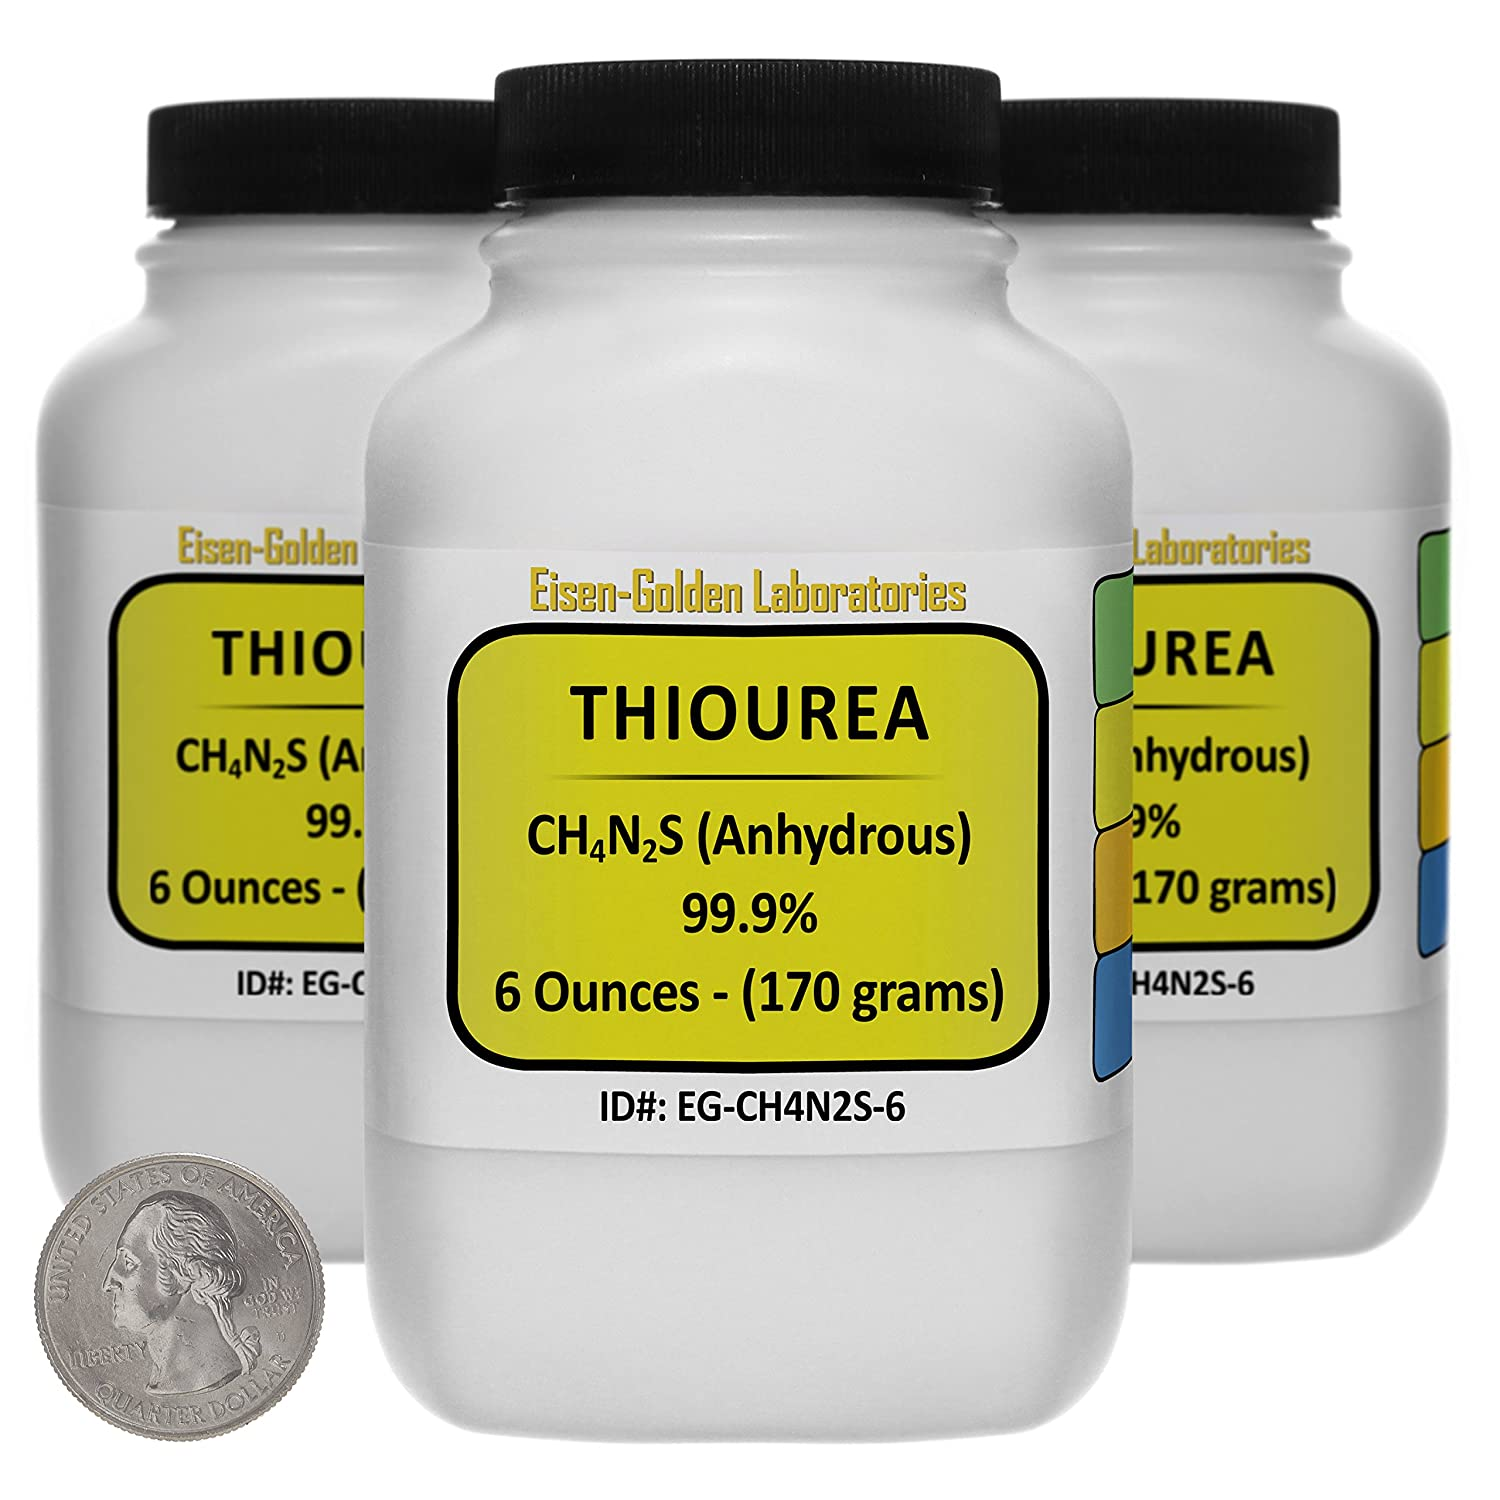 Thiourea [SC(NH2)2] 99.9% ACS Grade Crystals 1 Lb in Three Space-Saver Bottles USA Eisen-Golden Laboratories 4336975248